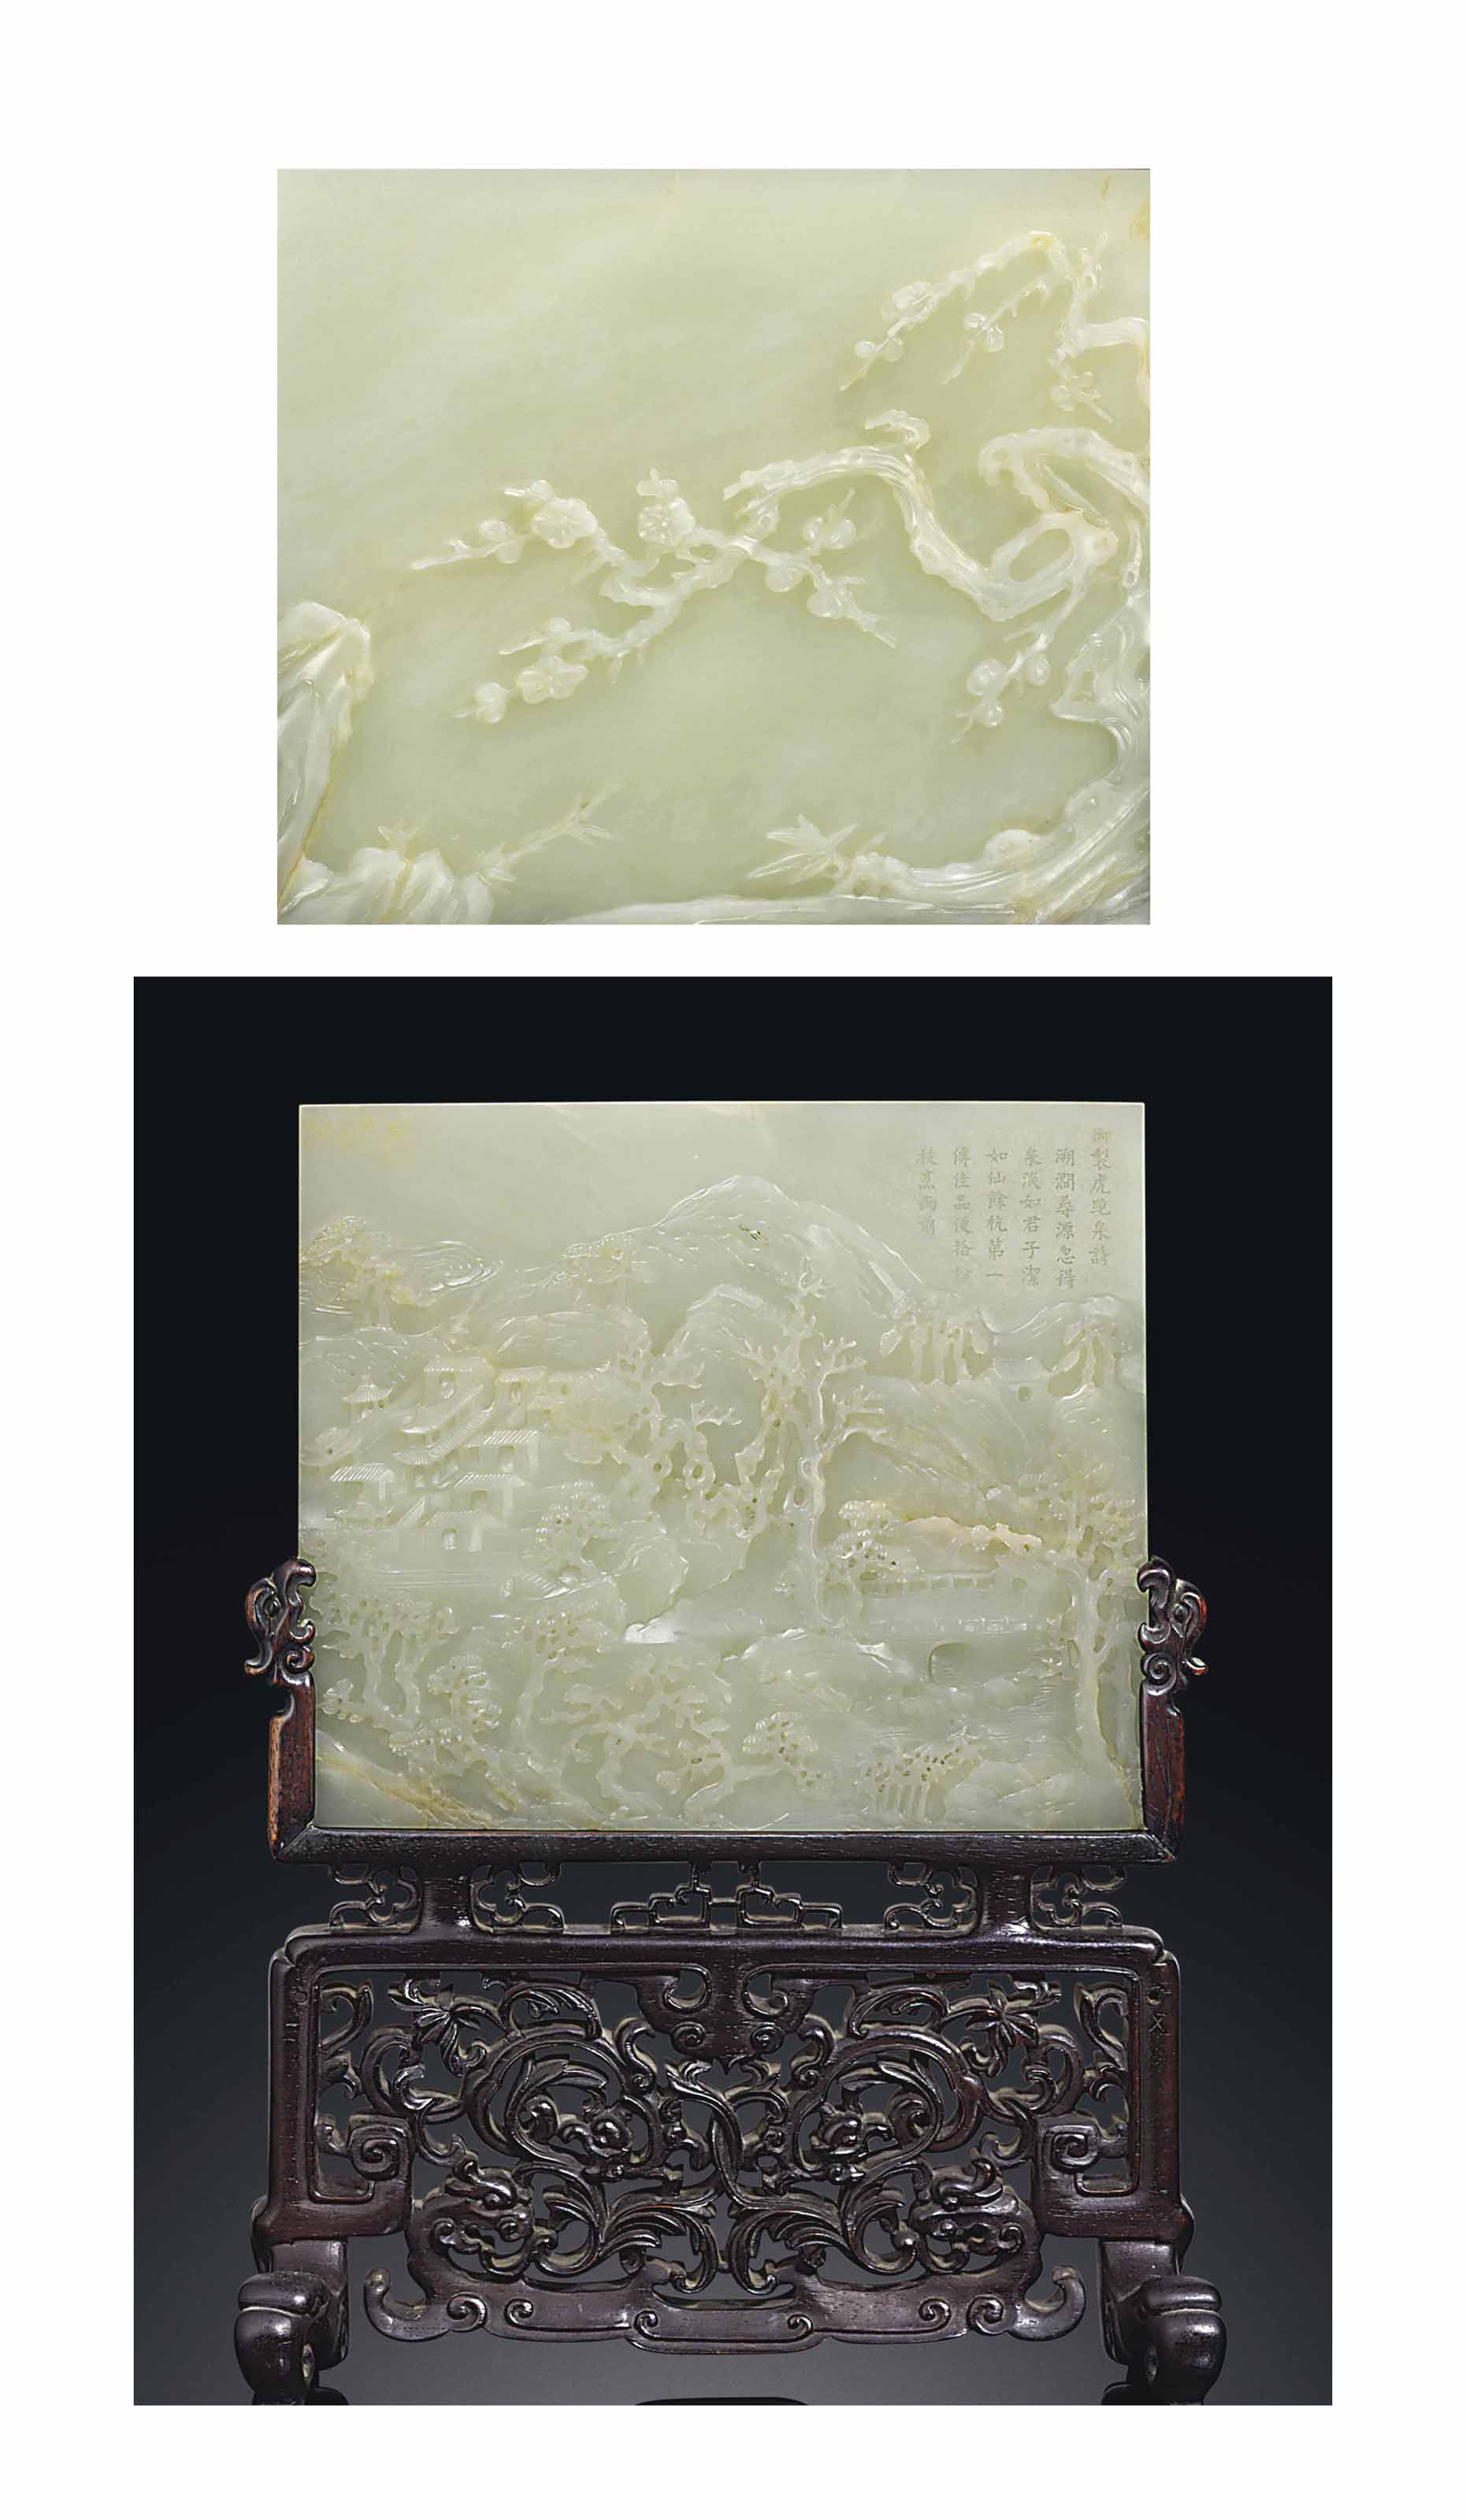 A FINELY CARVED AND INSCRIBED PALE CELADON JADE TABLE SCREEN